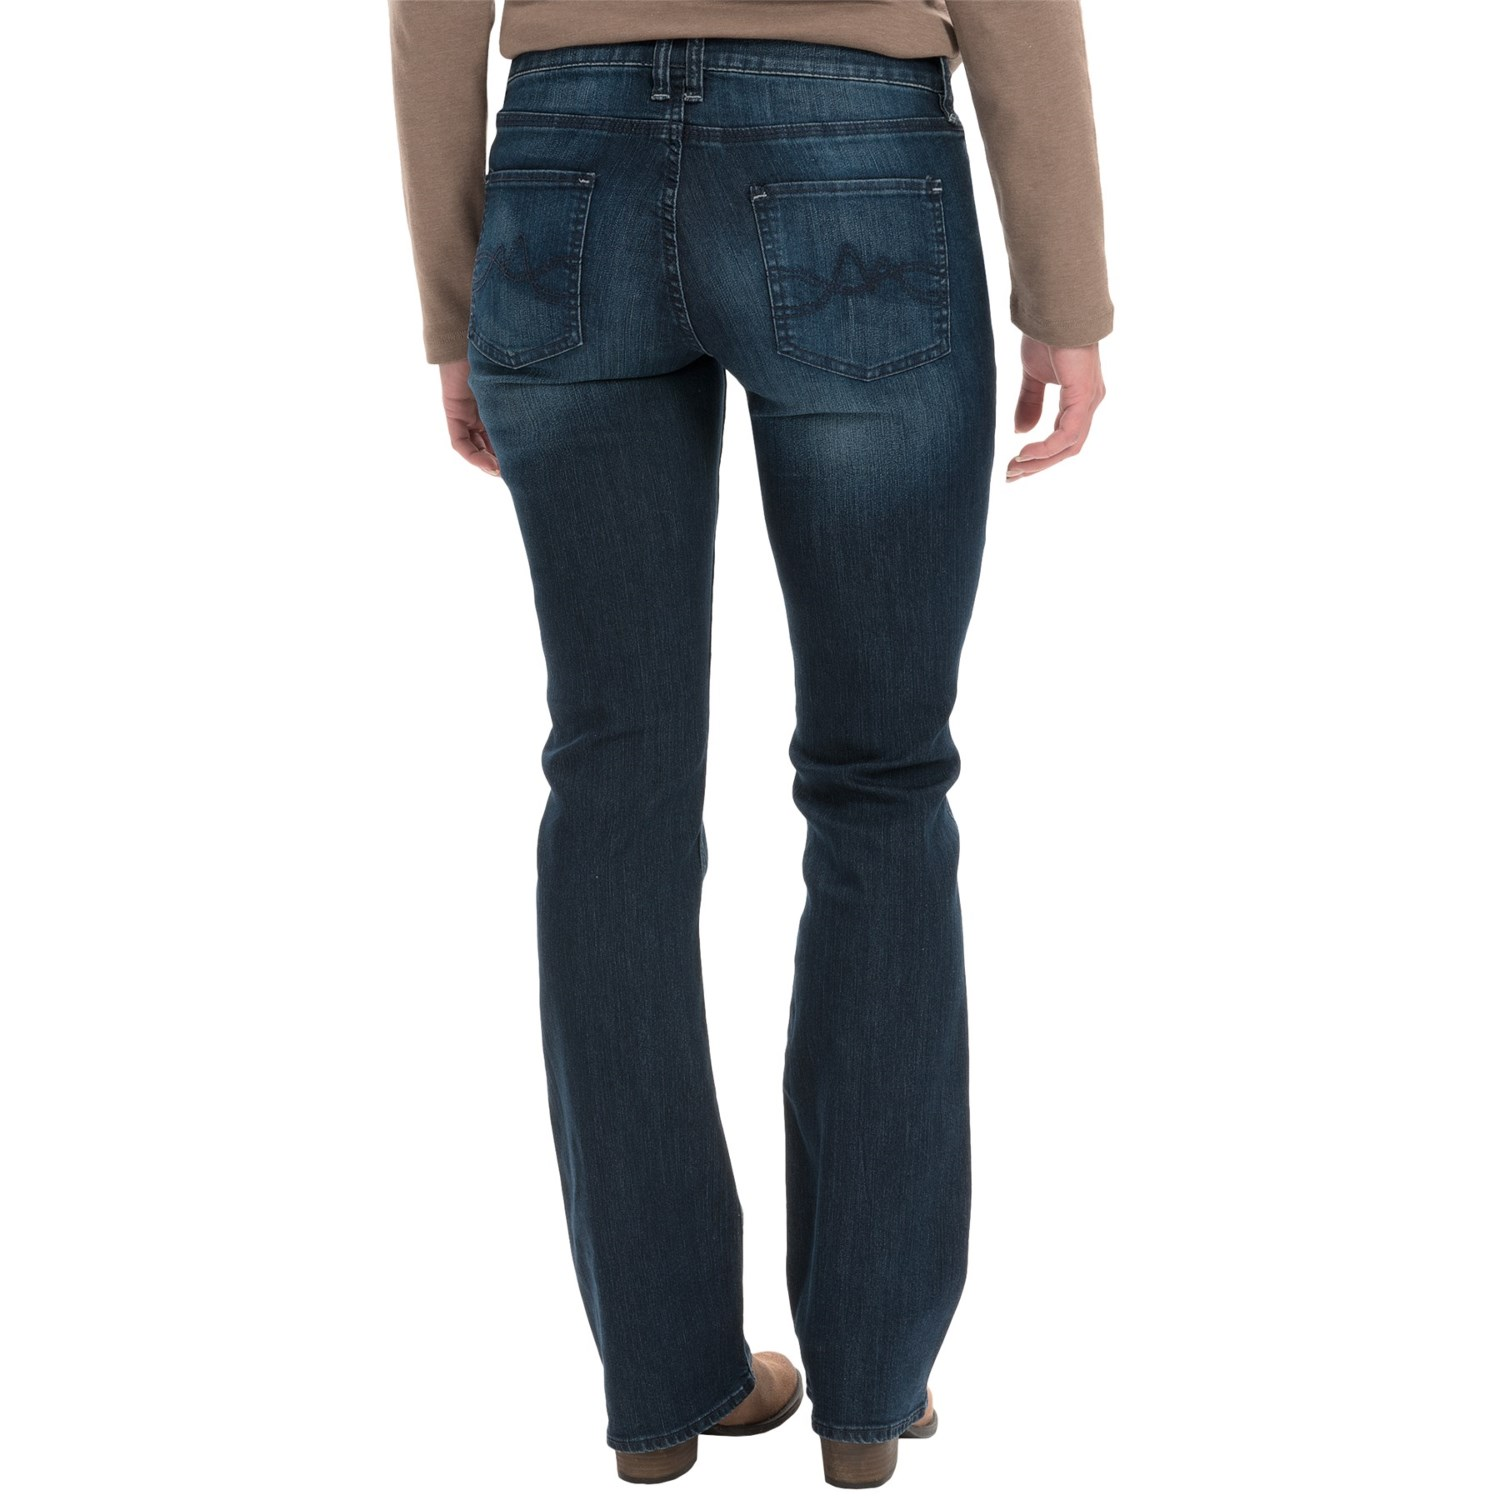 Paige Petite Hidden Hills Boot Jeans. Paige Denim Curvy women of all heights can benefit from the way a bootcut jean balances out rounder hips. For petite curvy women in particular, though, you'll look best in a slimmer fitting bootcut.